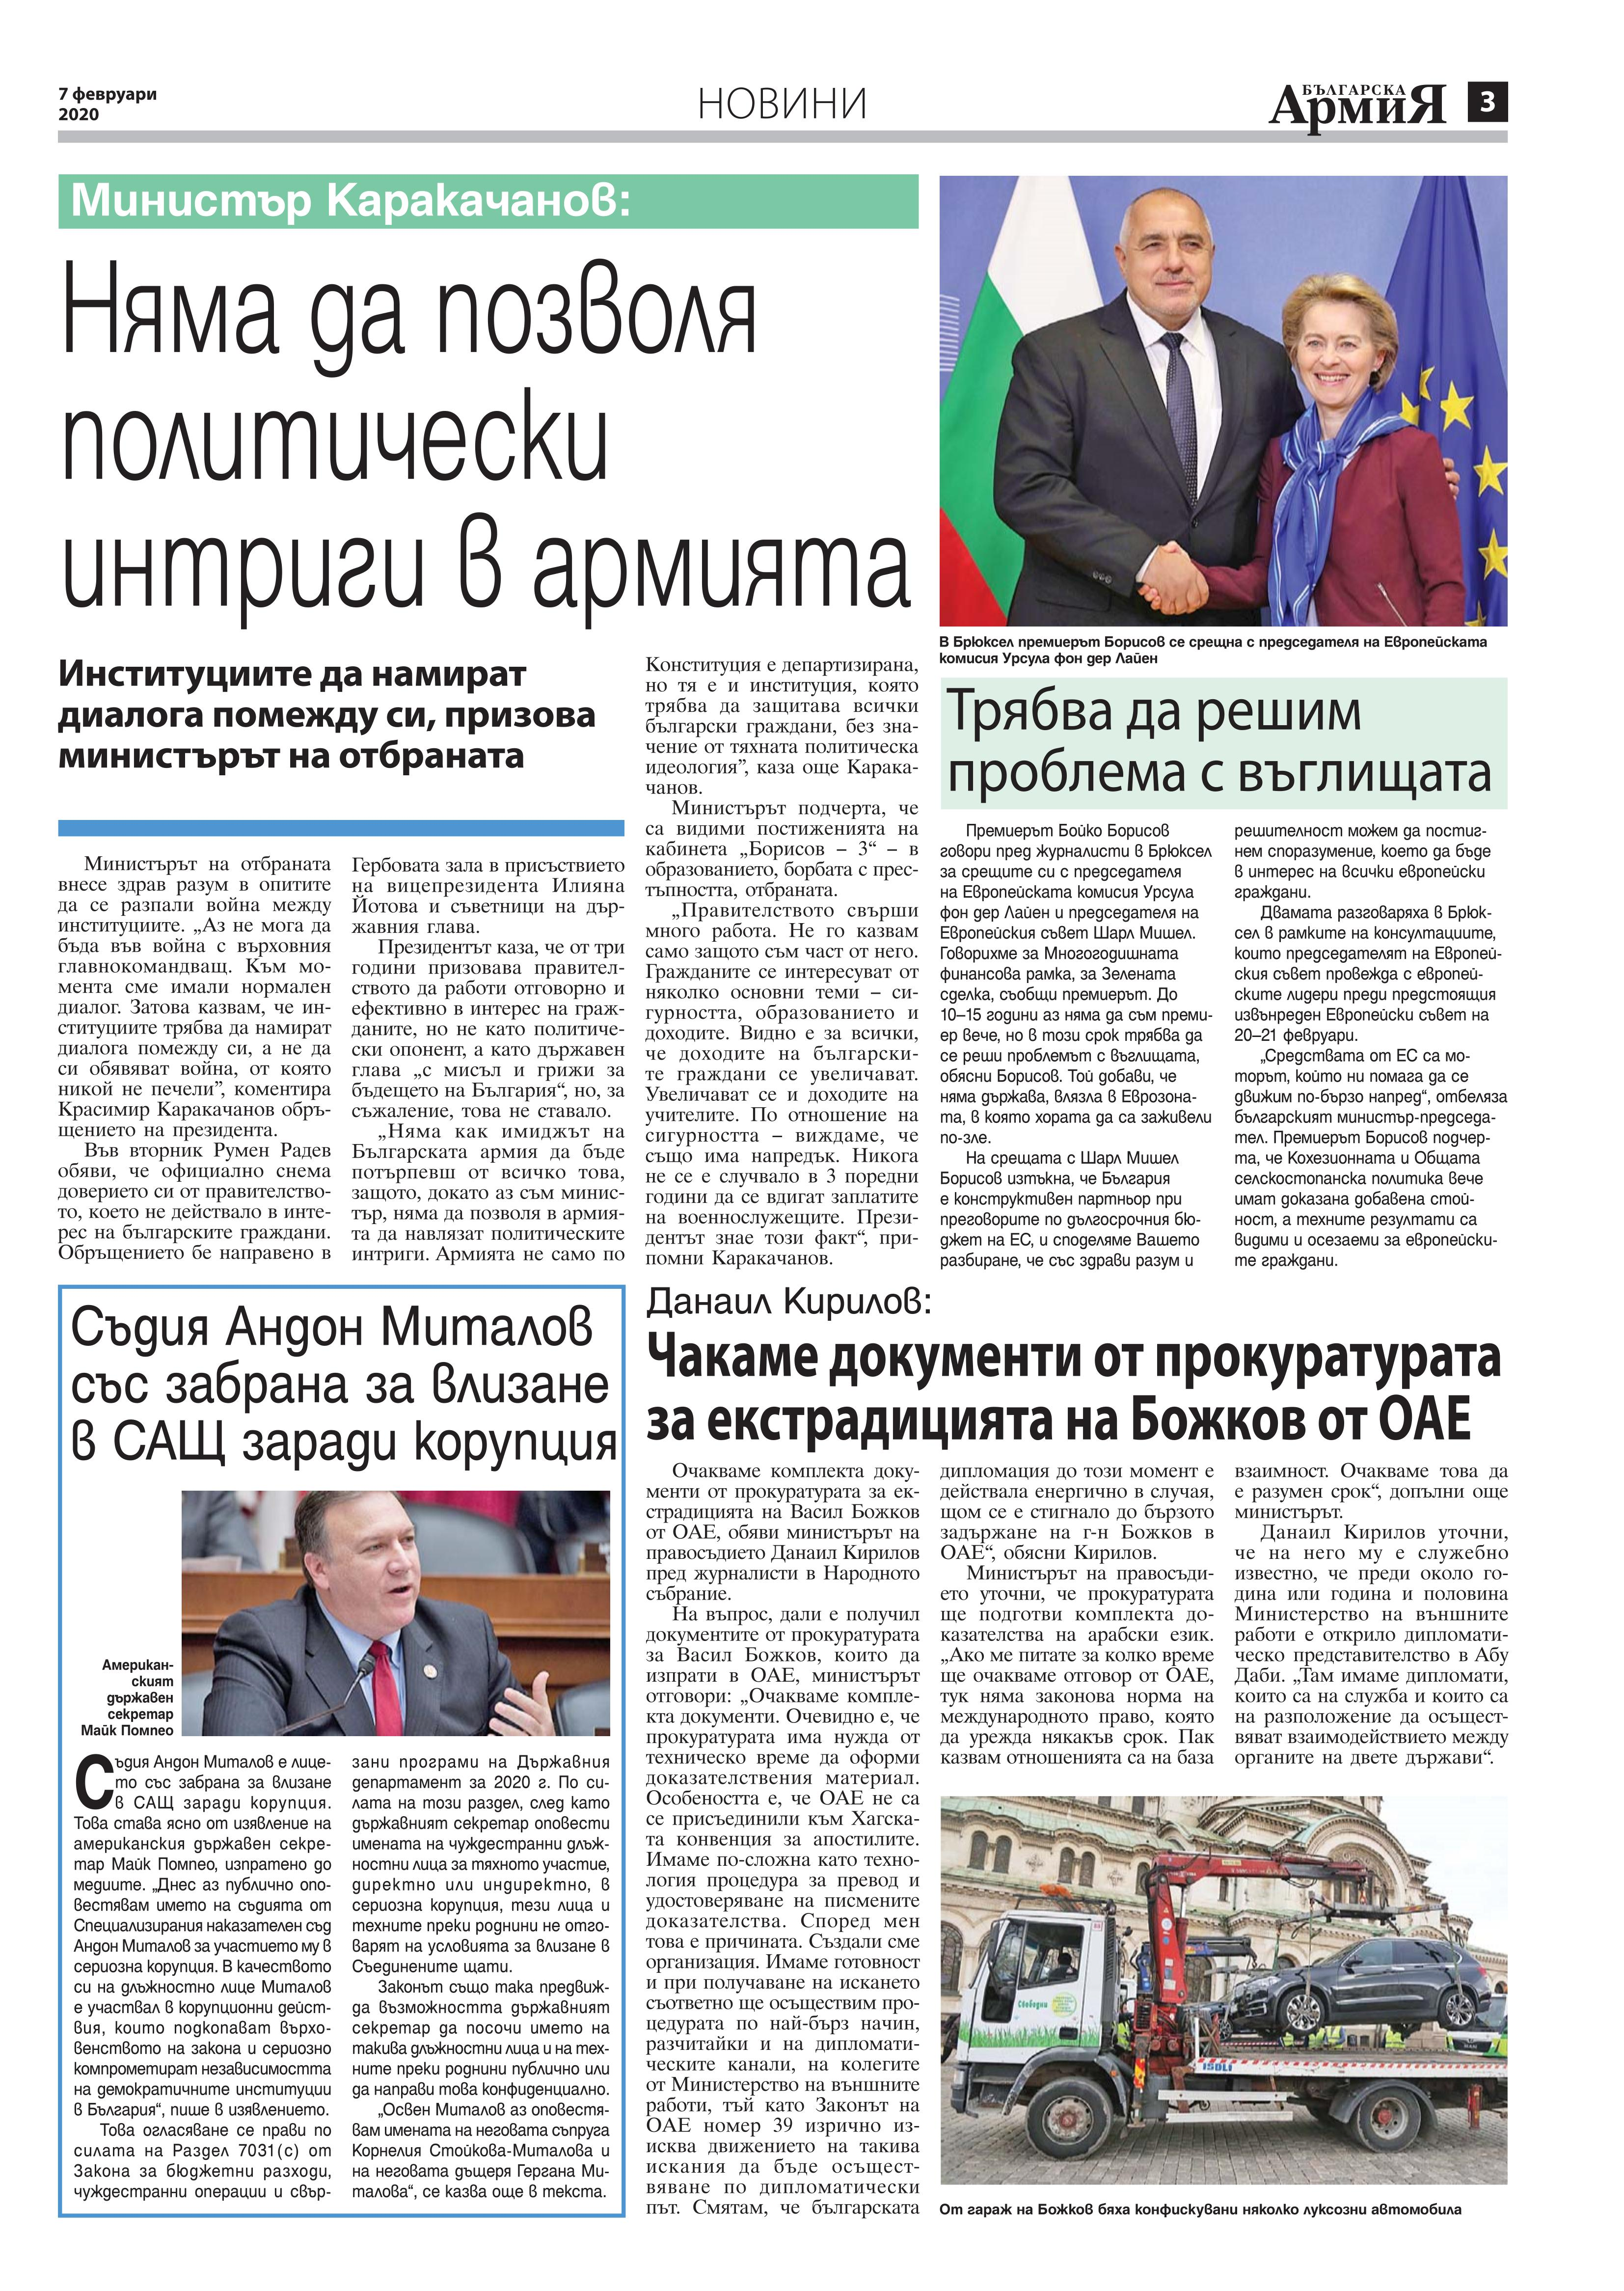 https://armymedia.bg/wp-content/uploads/2015/06/03.page1_-123.jpg